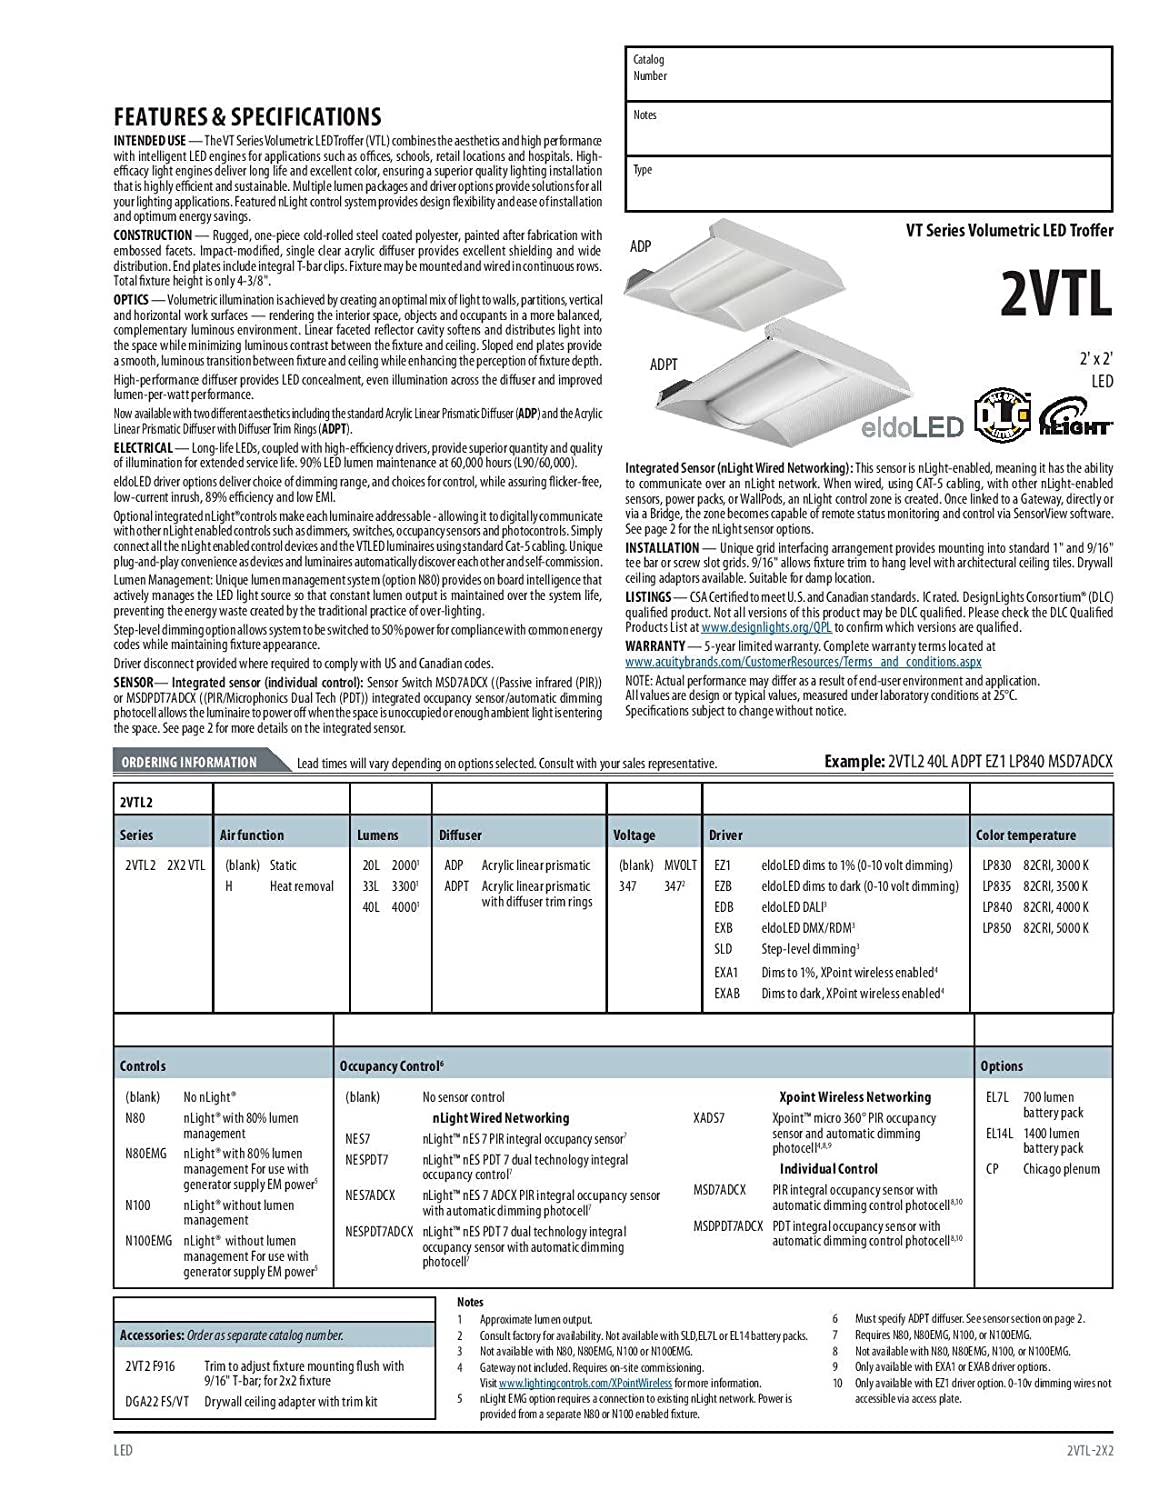 Lithonia Lighting 2vtl2 33l Adp Ez1 Lp835 Led Volumetric Nlight Wiring Diagram Architectural Troffer With Acrylic Diffuser 3500k 3300 Lm 2 By White Home